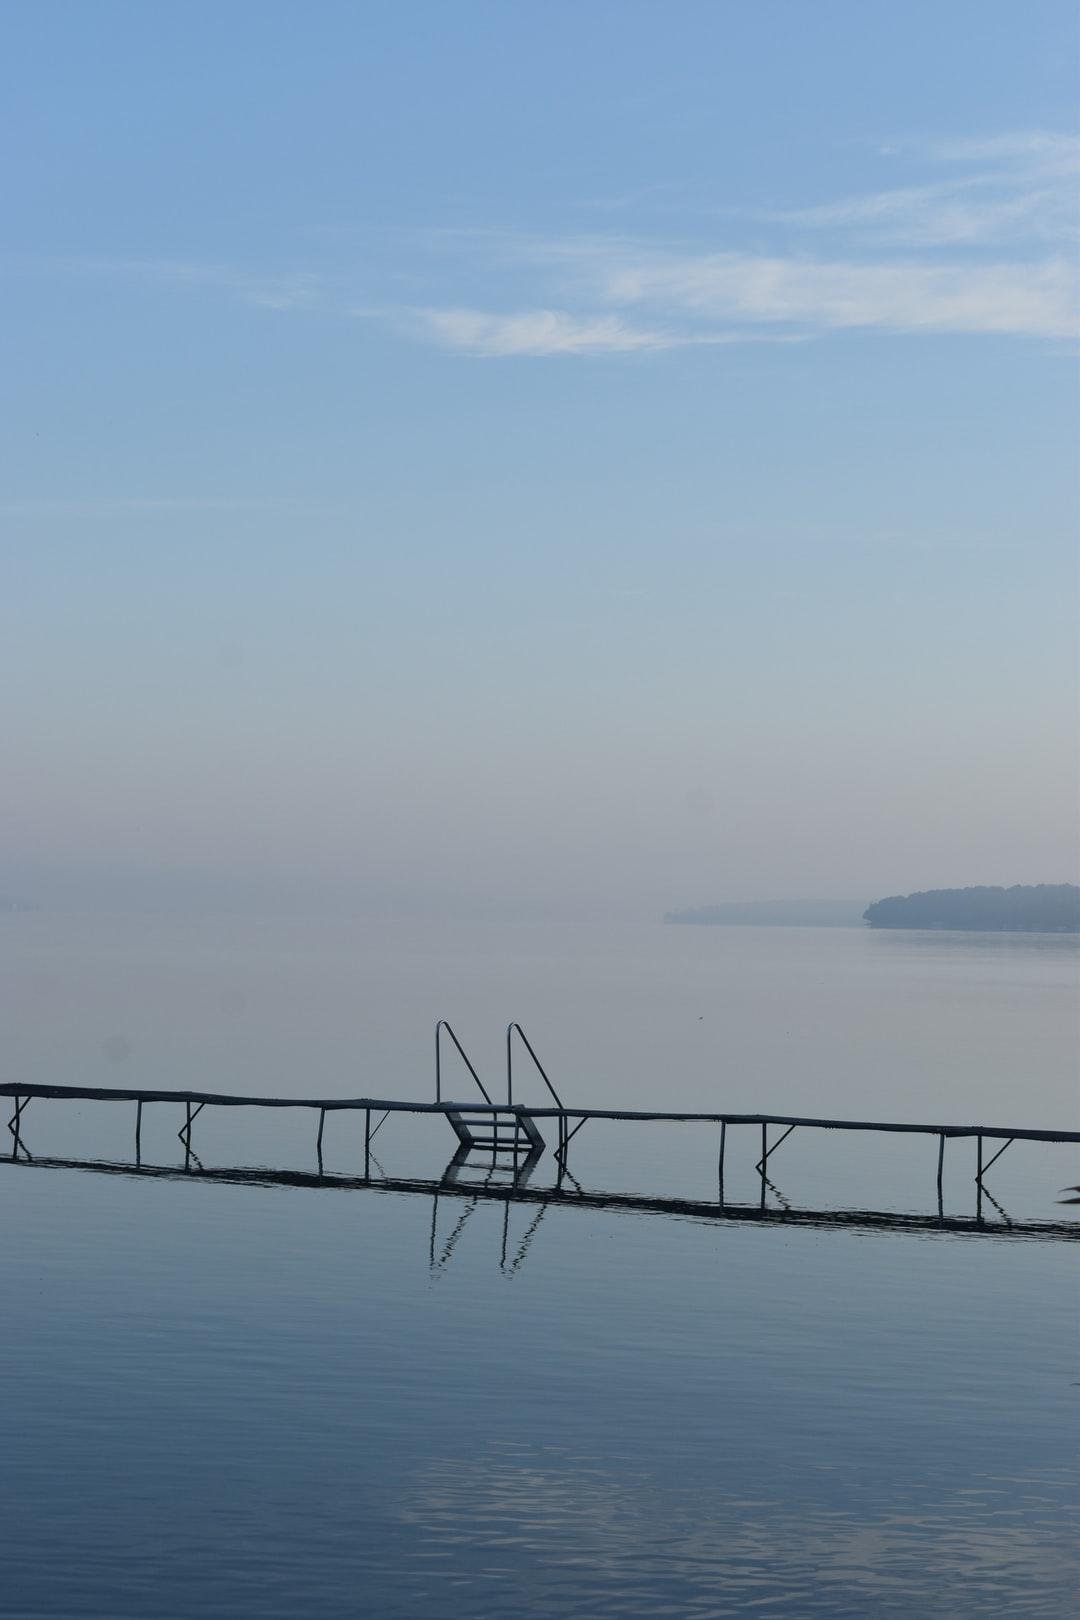 The water is calm near the boat dock as behind a haze sets over the lake